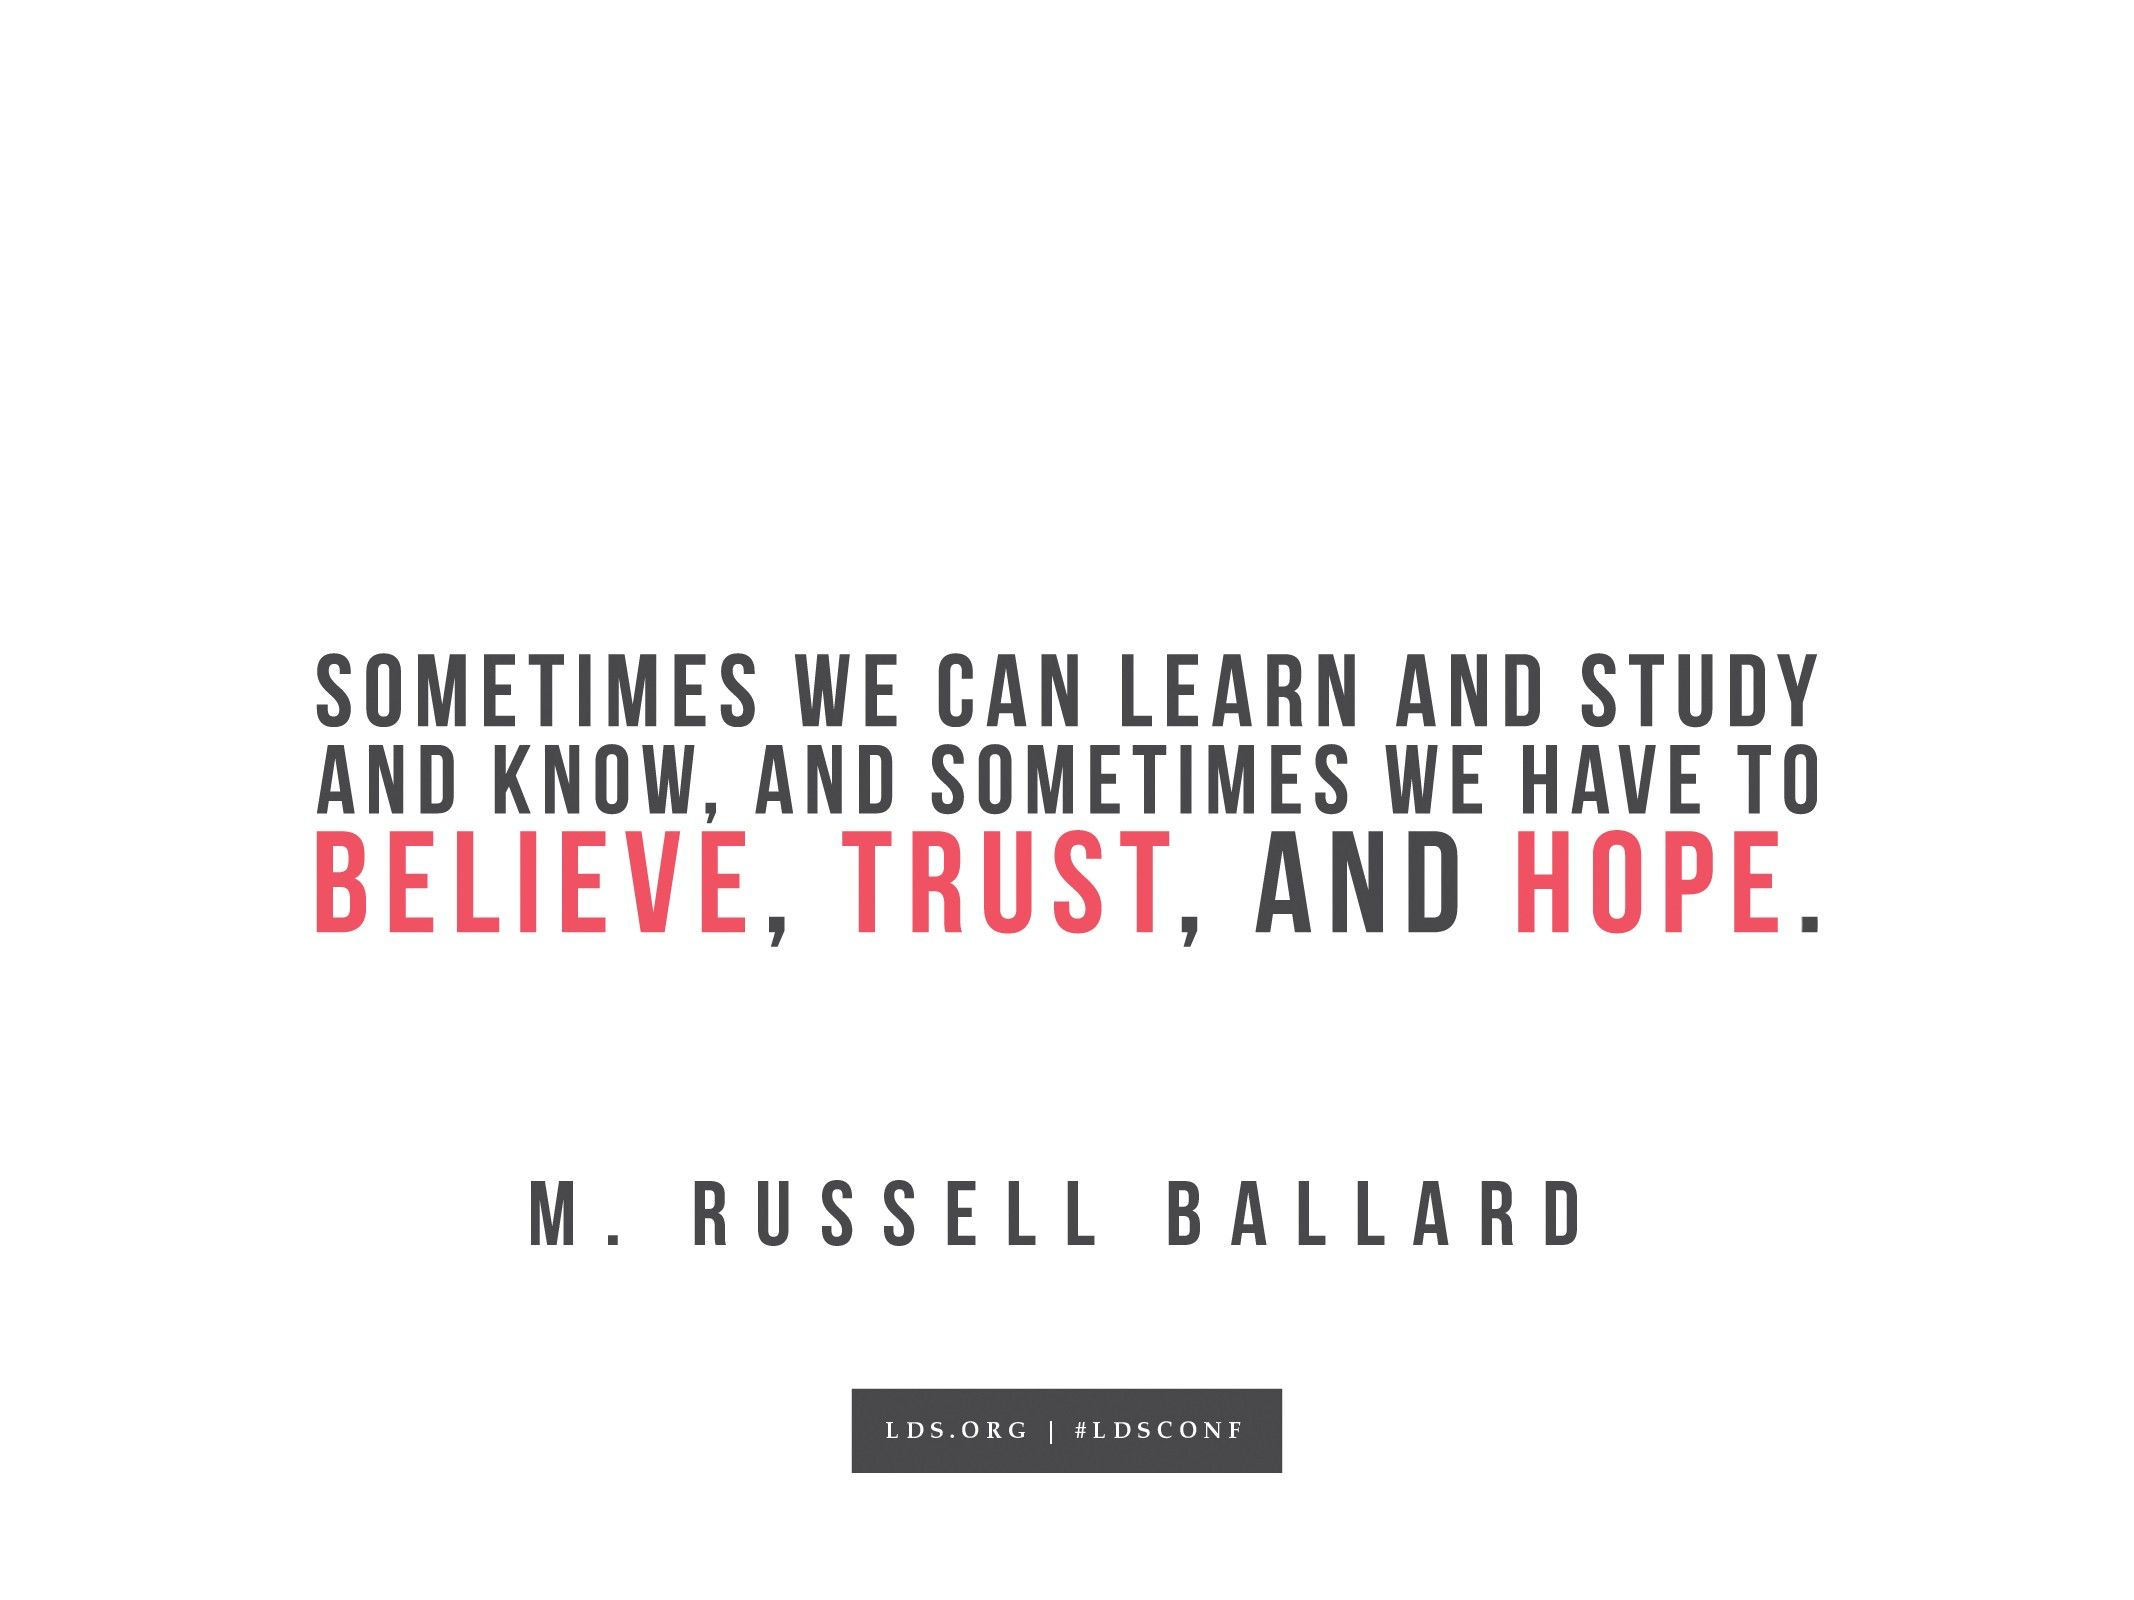 """""""Sometimes we can learn, study, and know, and sometimes we have to believe, trust, and hope.""""—M. Russell Ballard, """"To Whom Shall We Go?"""""""